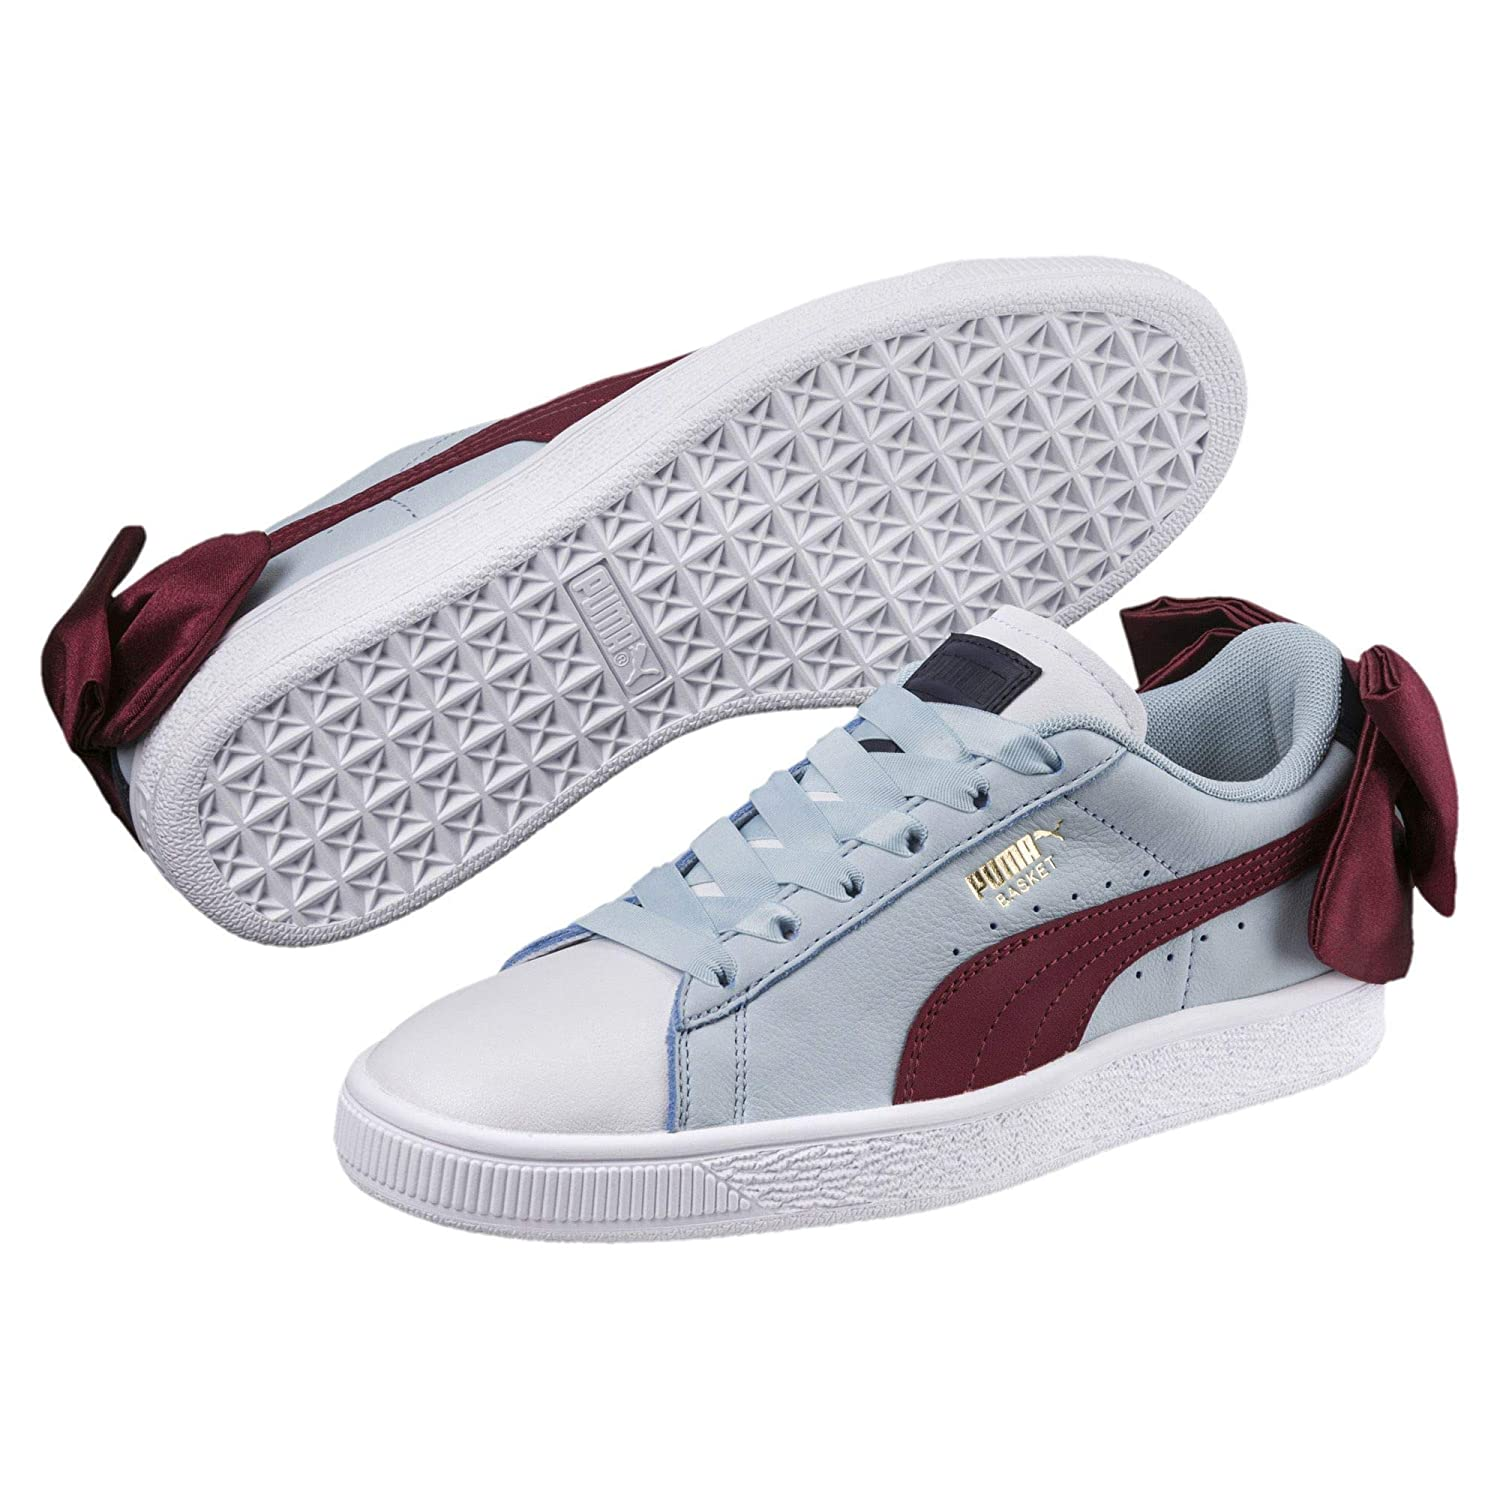 Puma Basket Bow New School Damen Turnschuhe